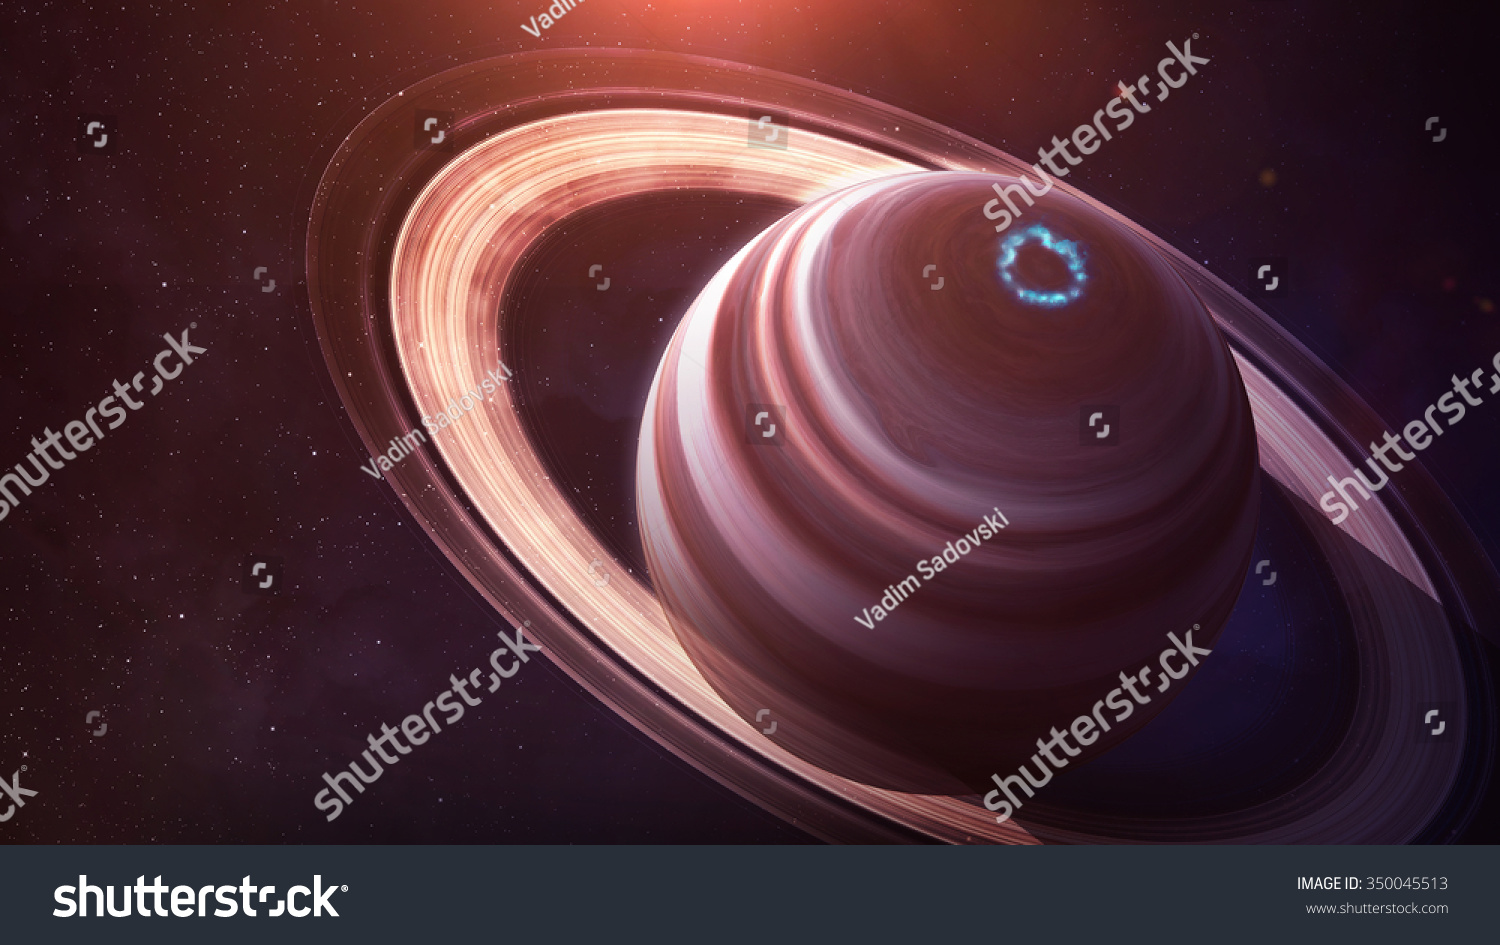 Saturn High resolution best quality solar system planet All the planets available This image elements furnished by NASA